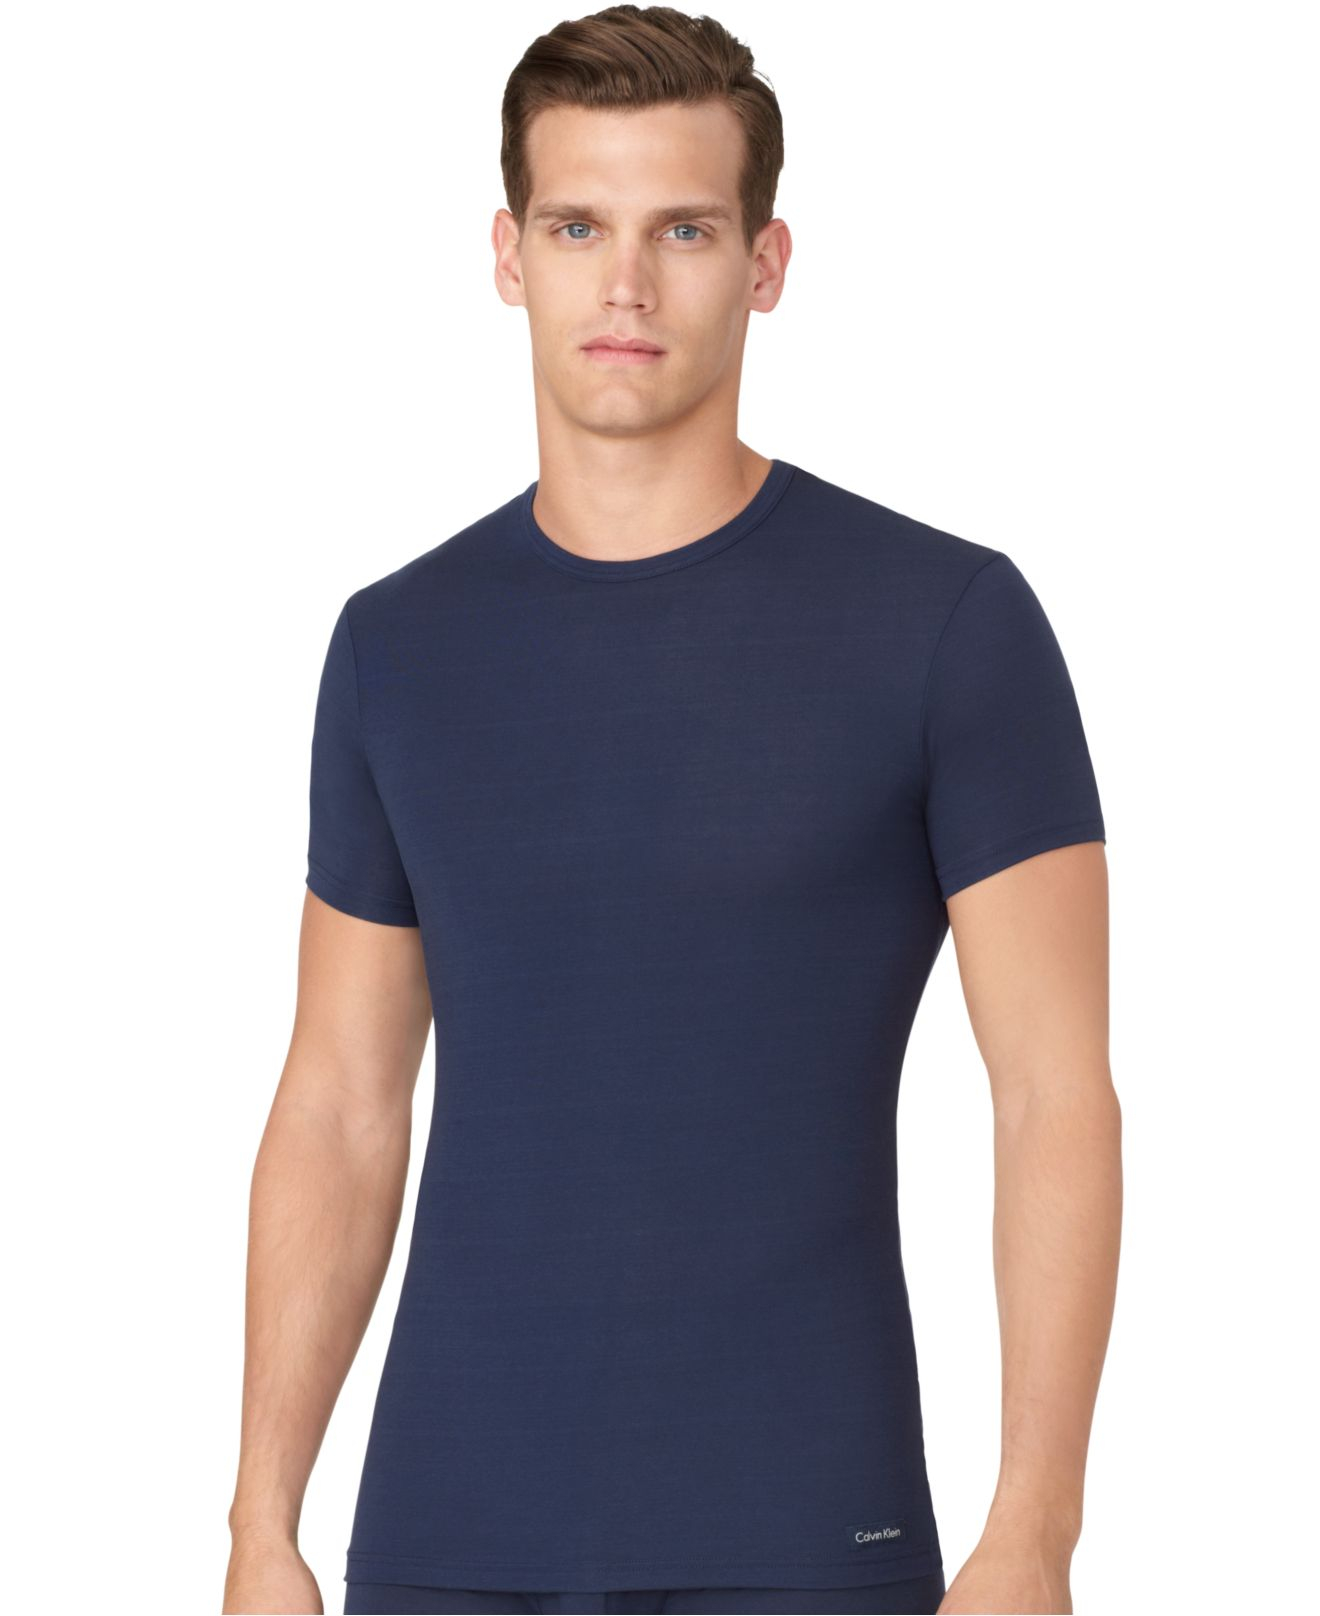 calvin klein men 39 s micro modal basic t shirt u5551 in blue